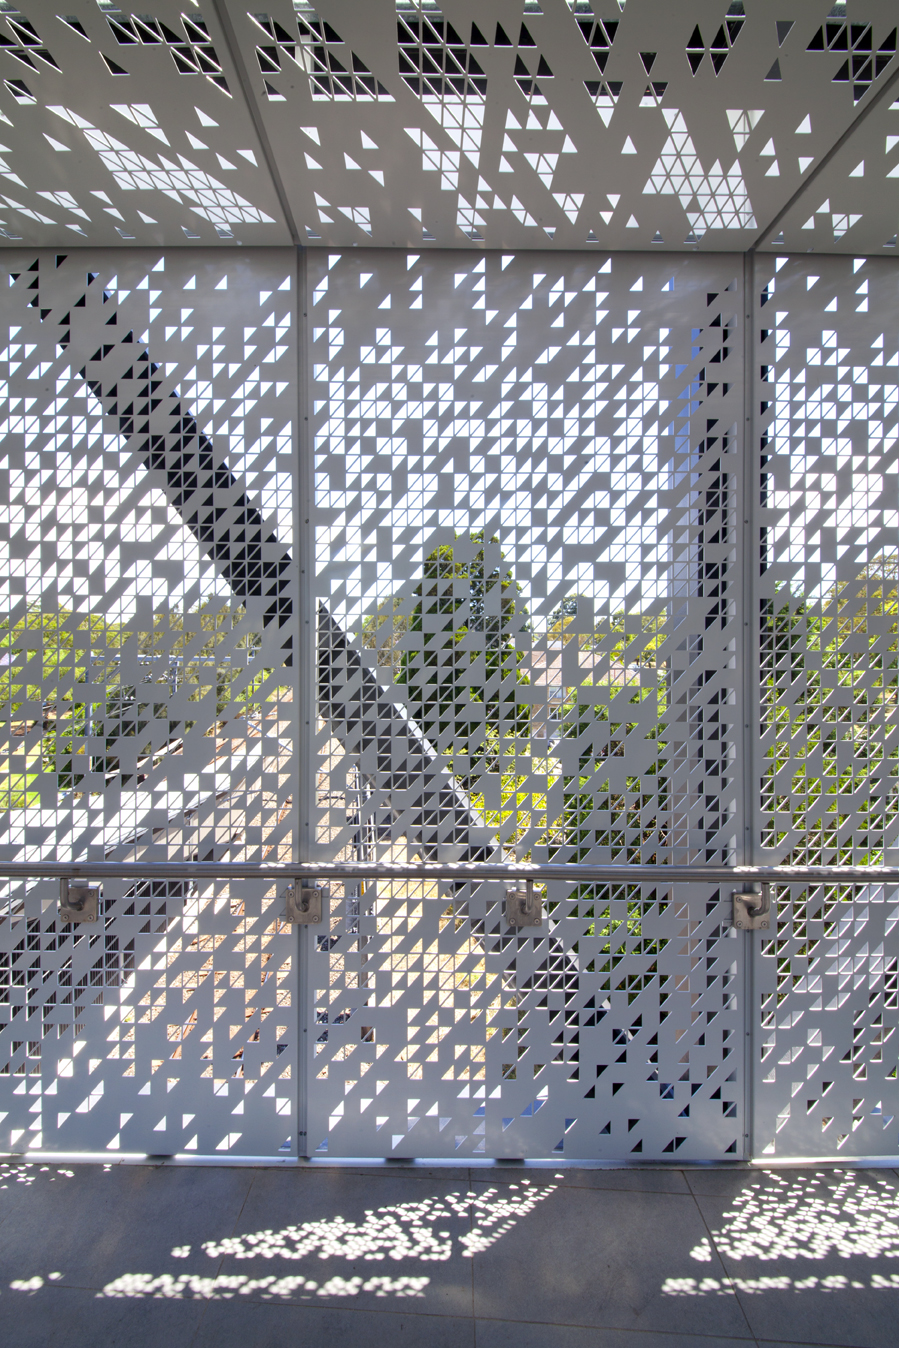 Bespoke perforated metal design - Oatley Station